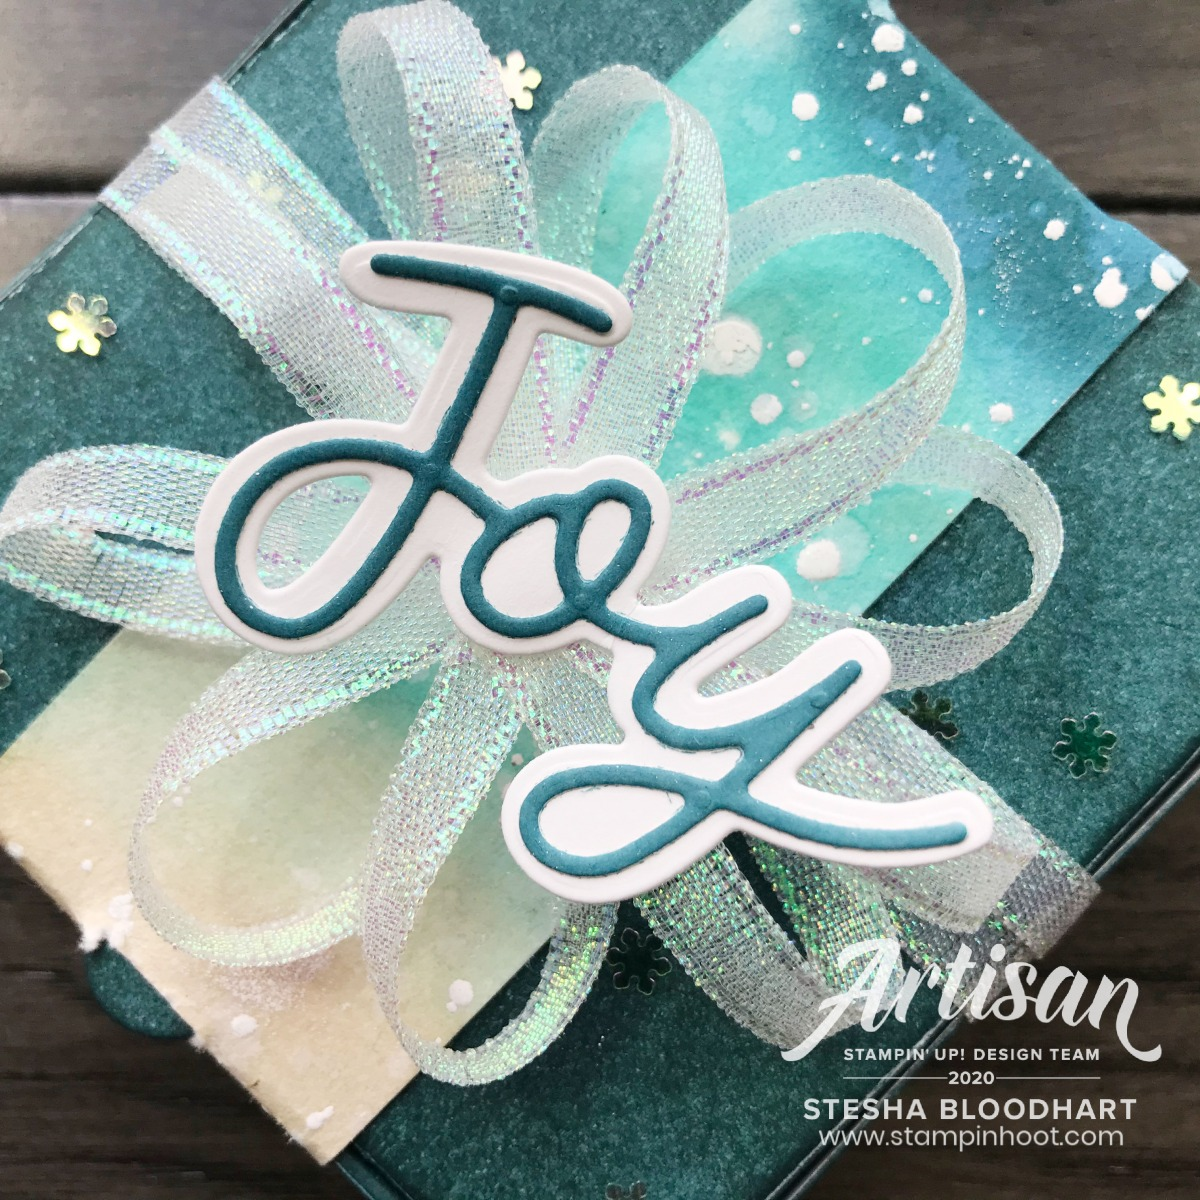 Peace & Joy Bundle from Stampin' Up! Creations by Stesha Bloodhart, Stampin' Hoot! 2020 Artisan Design Team